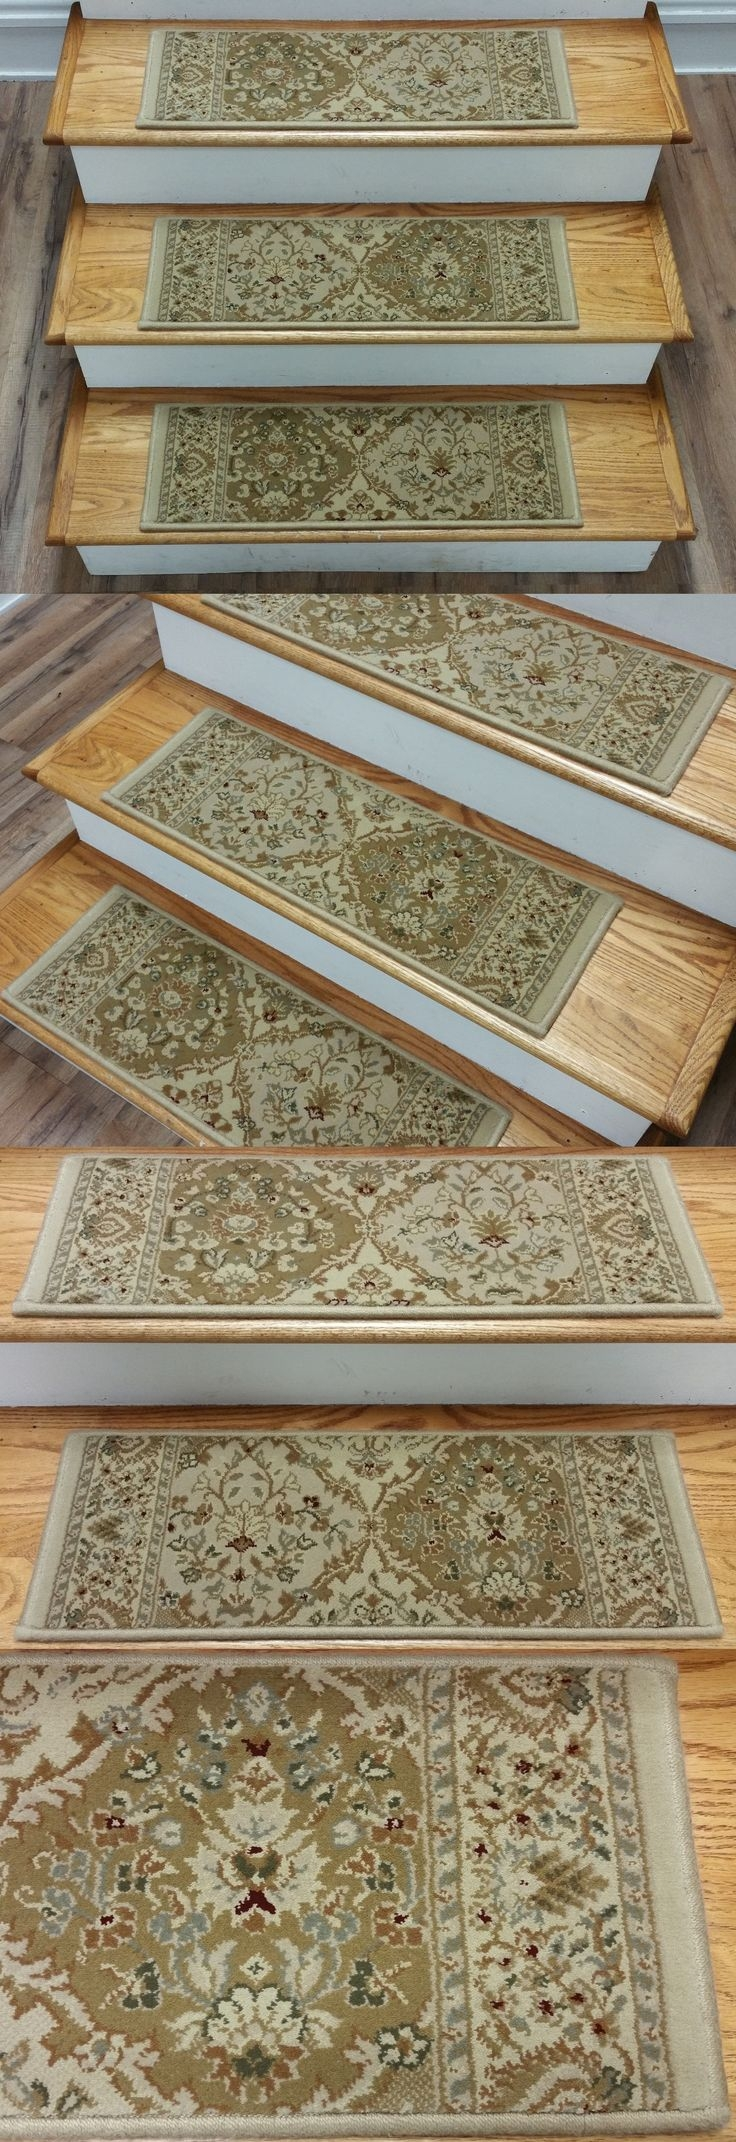 Top 25 Best Carpet Stair Treads Ideas On Pinterest Wood Stair Regarding Basket Weave Washable Indoor Stair Tread Rugs (#19 of 20)